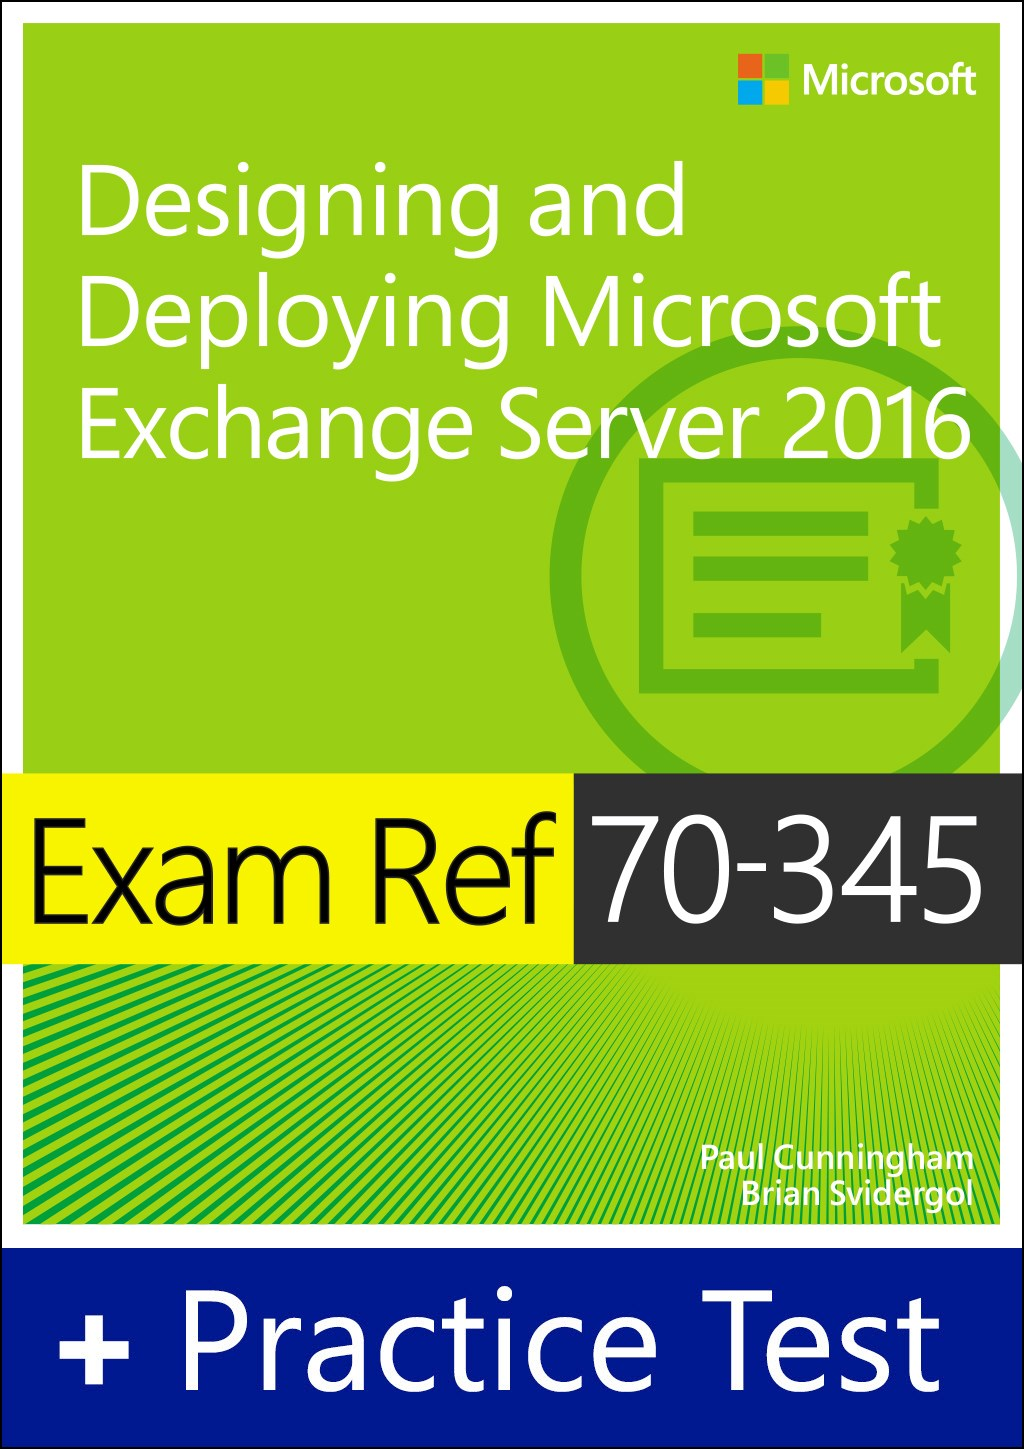 Exam Ref 70-345 Designing and Deploying Microsoft Exchange Server 2016 with Practice Test